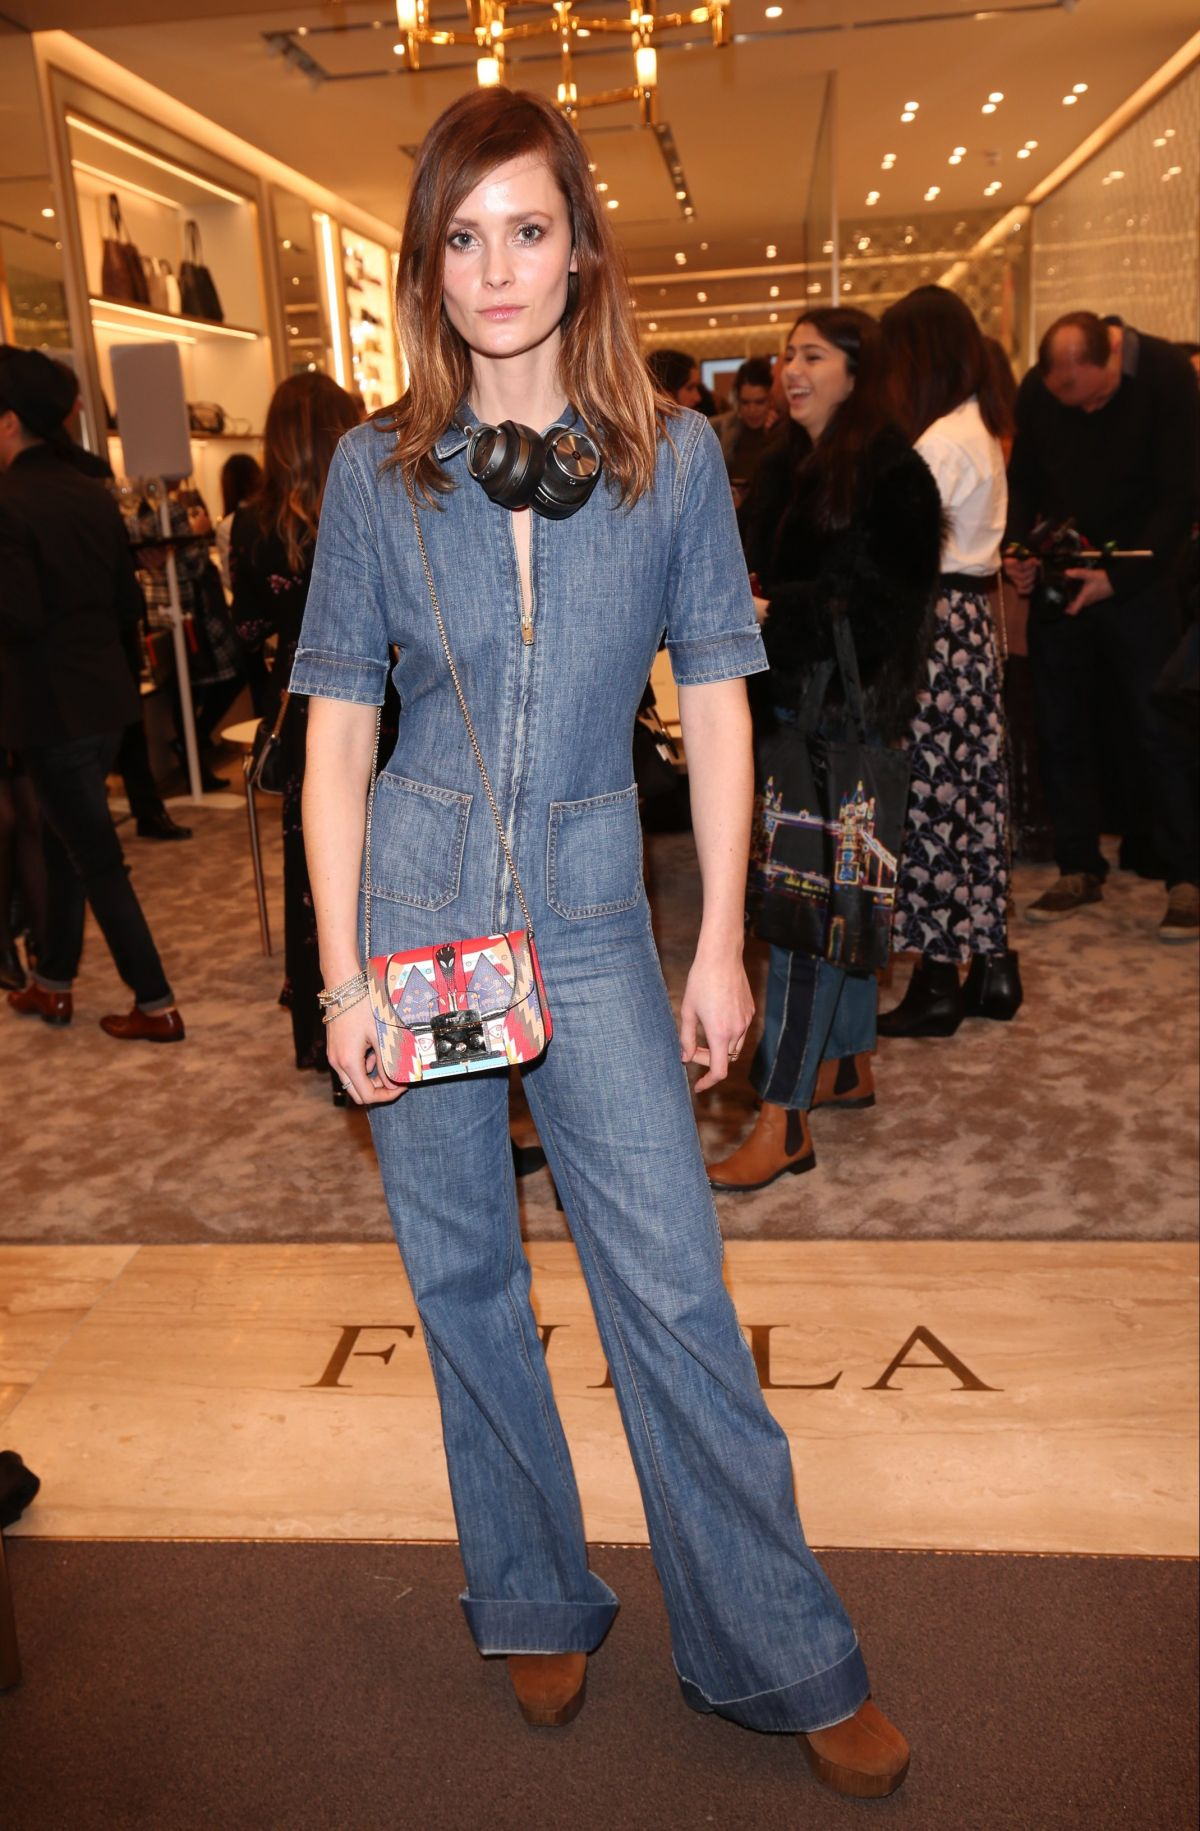 CHARLOTTE DE CARLE at Furla Store Launch Party in London 02/02/2017